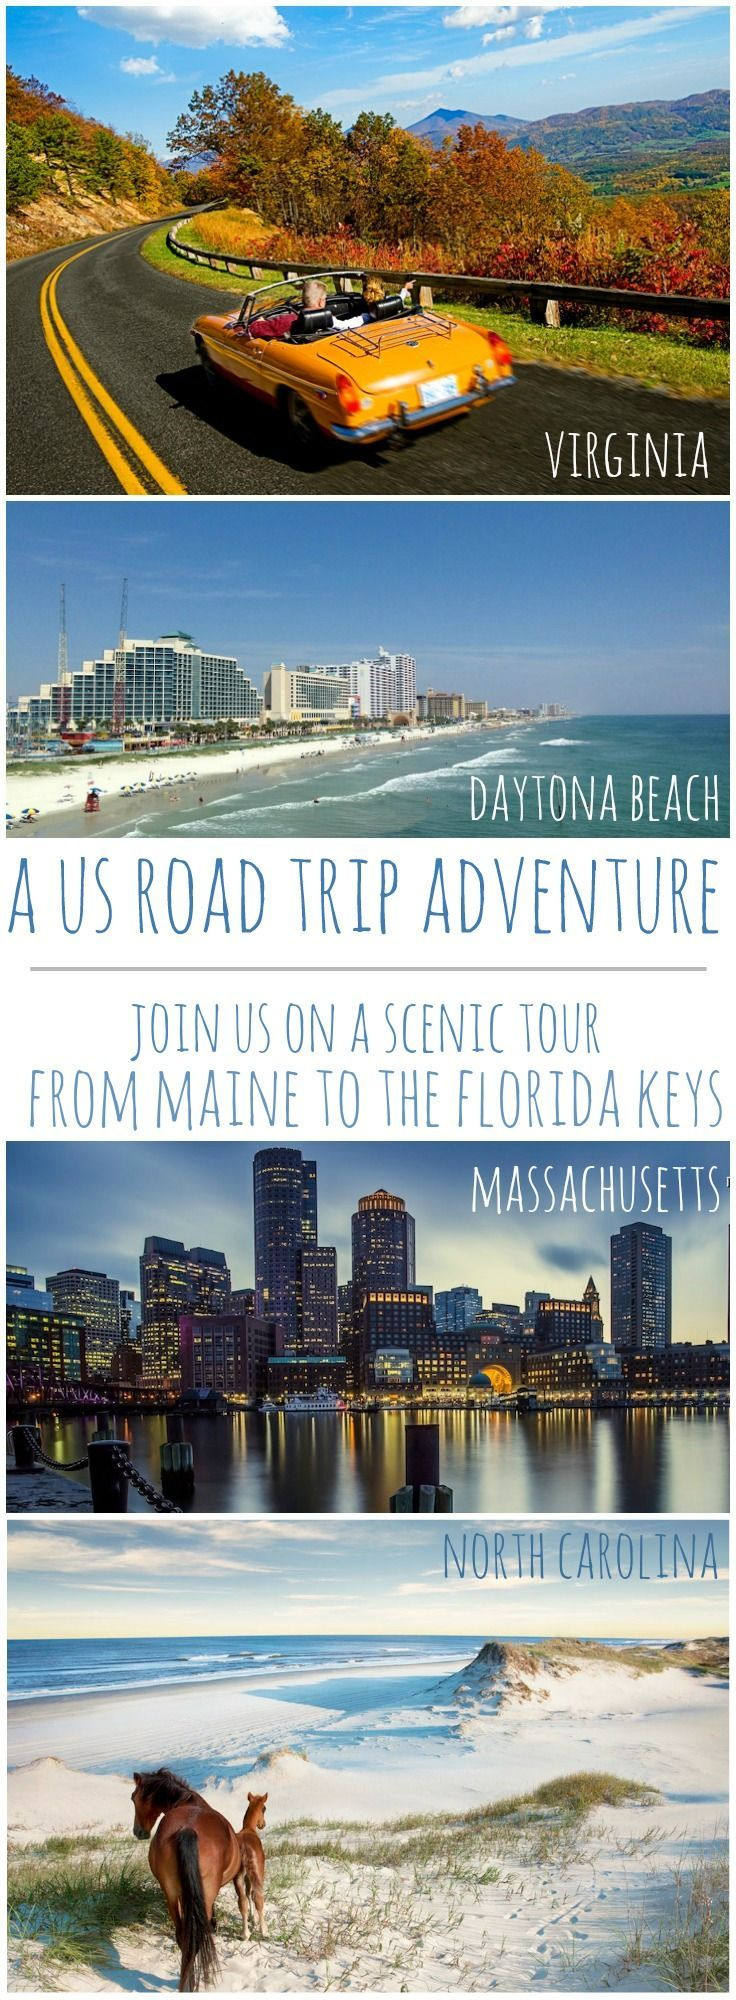 Ready for a US road trip? We certainly are! Award-winning travel writer Ella Buchan is taking us on the adventure of a lifetime to travel across America, down the east coast of the USA. Follow #DriveUS1 as Ella takes us on a 2,500 mile plus north-south journey of US Route 1, from Fort Kent, in northern Maine, to the iconic mile marker zero in Key West, Florida.